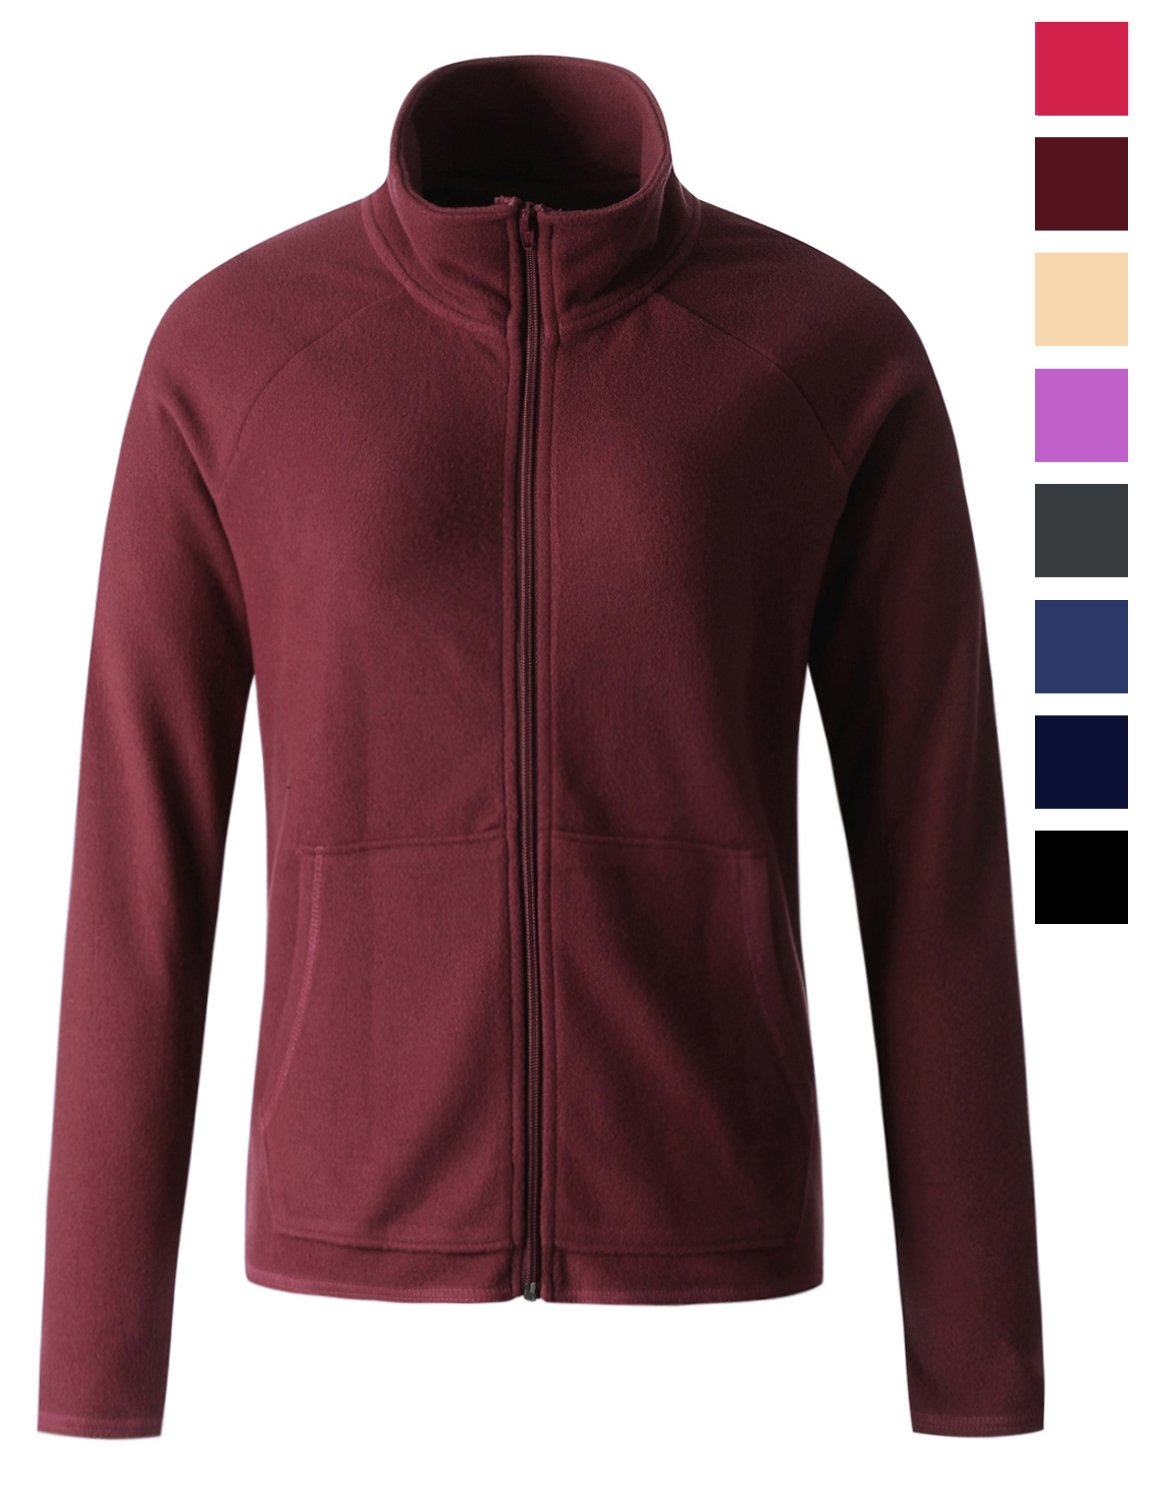 Regna X Women's Polartec Thermal Warm Full Zip up Fleece Jacket Red S Small